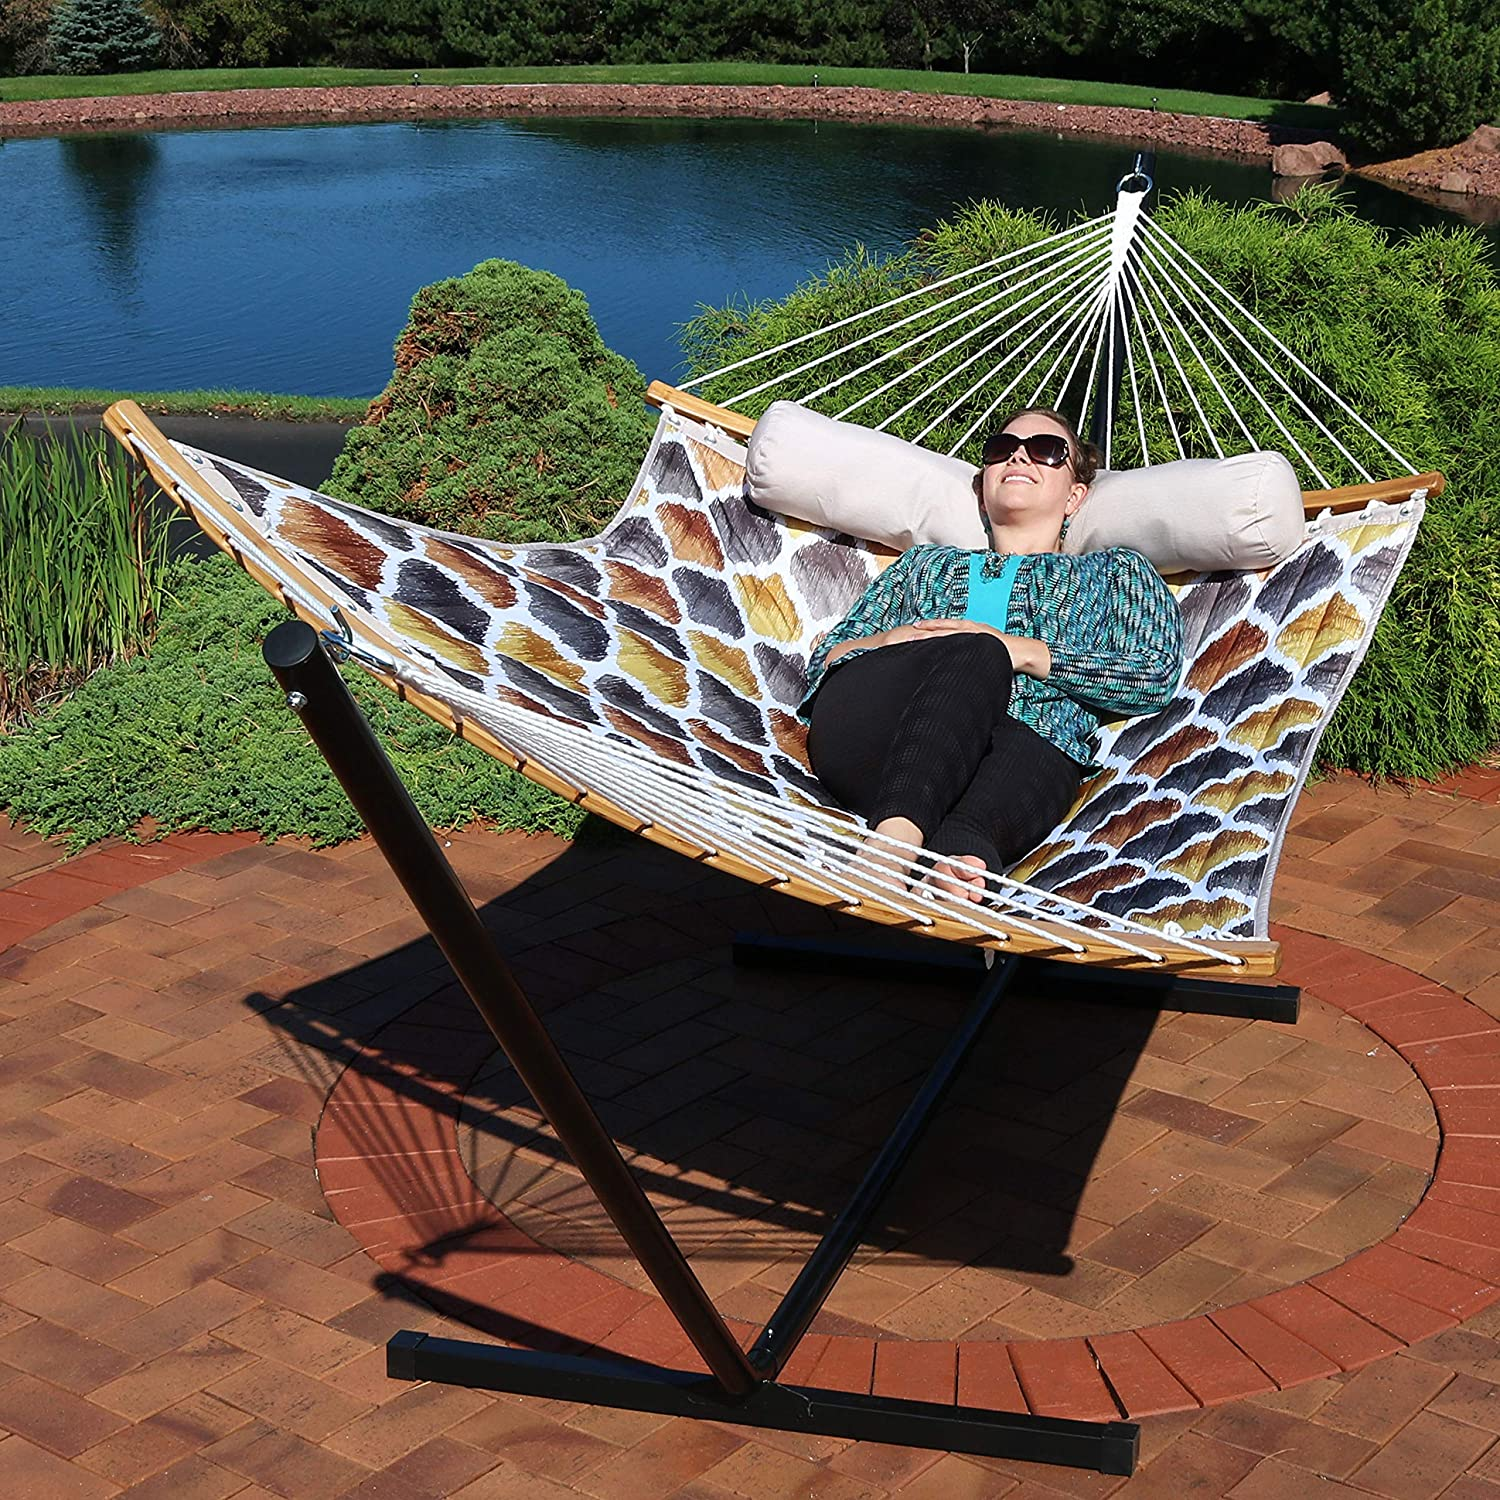 Sunnydaze Quilted 2 Person Hammock With Curved Bamboo Spreader Bars, Heavy Duty